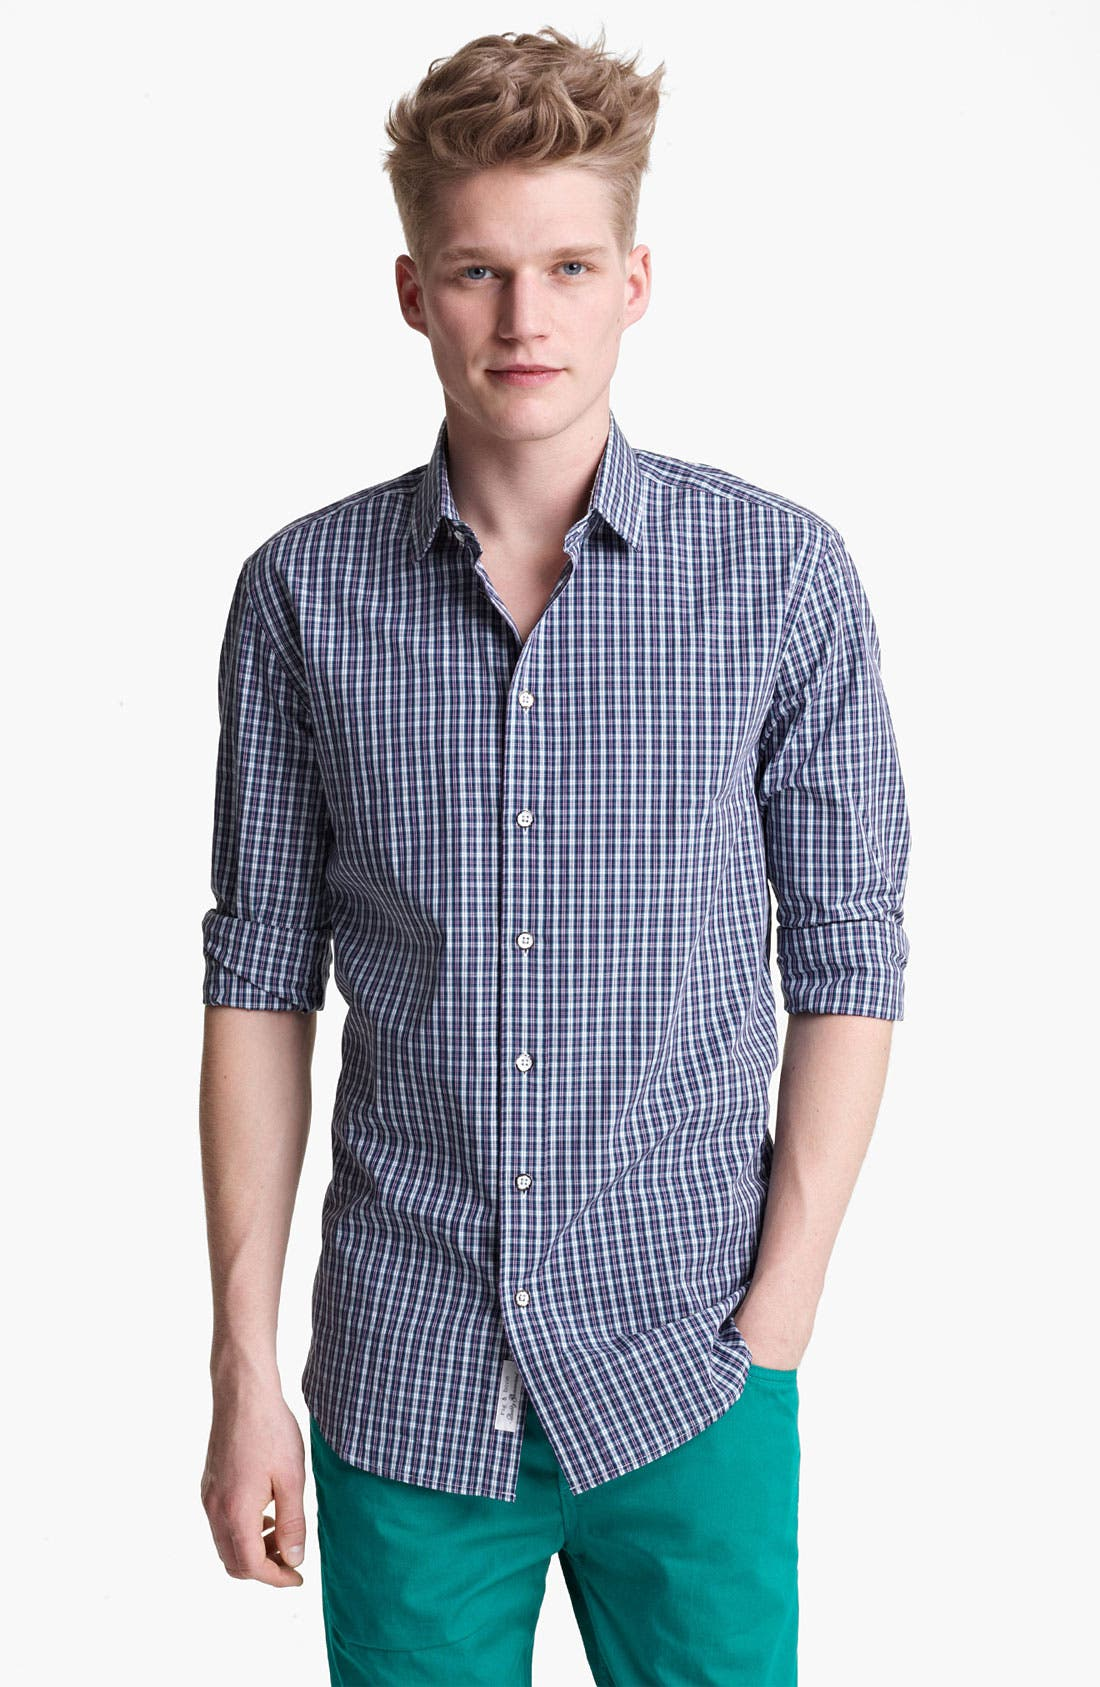 Alternate Image 1 Selected - rag & bone 'Charles' Plaid Woven Shirt